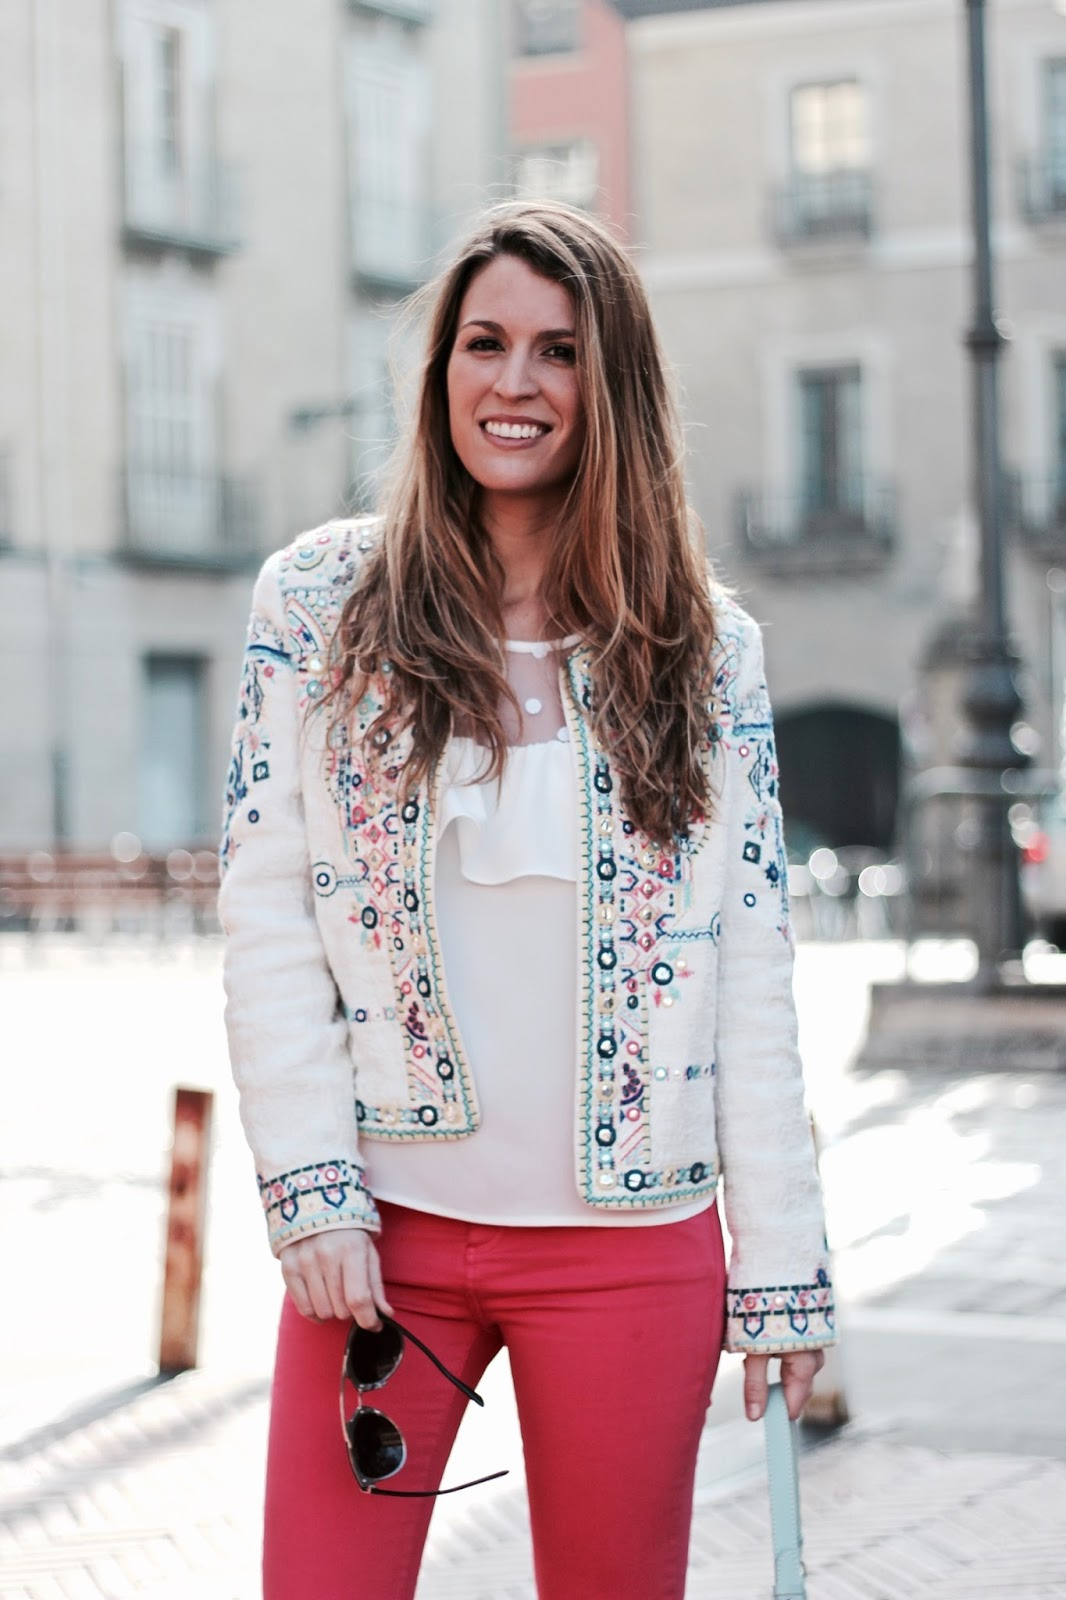 blog de moda pamplona